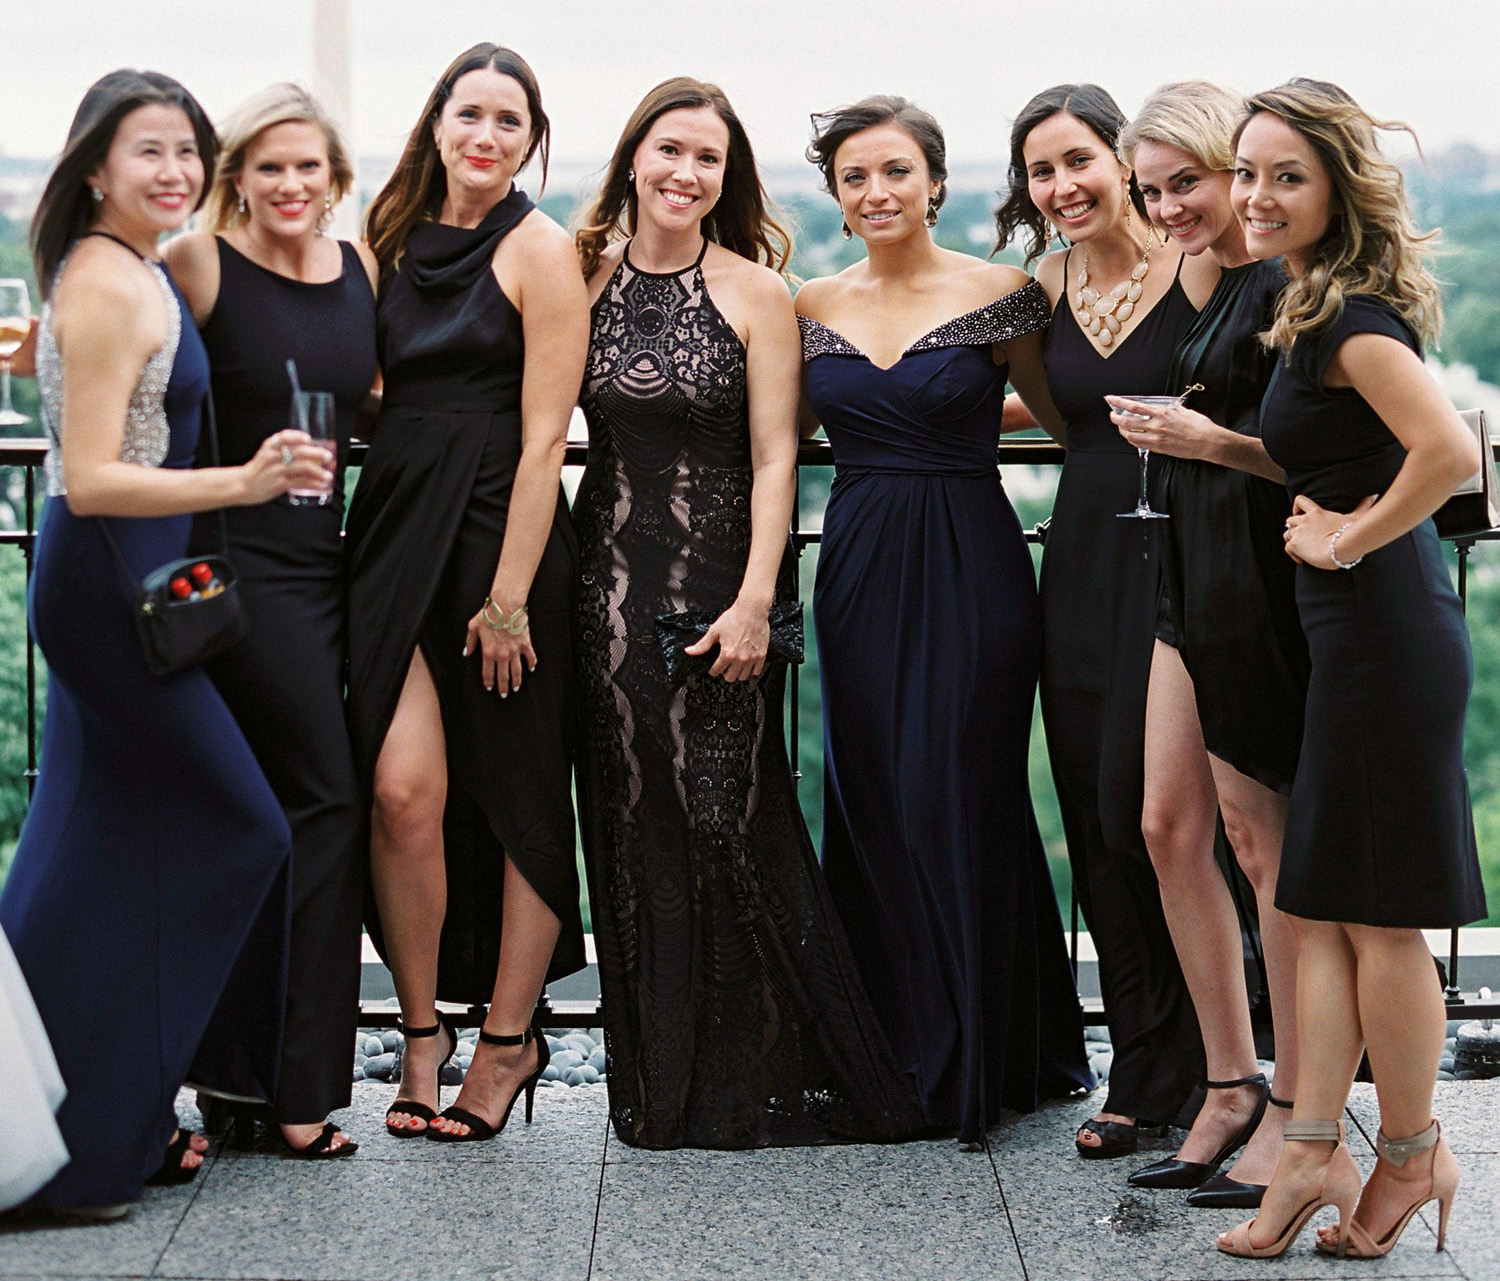 how to involve your friends in your wedding without having a bridal party